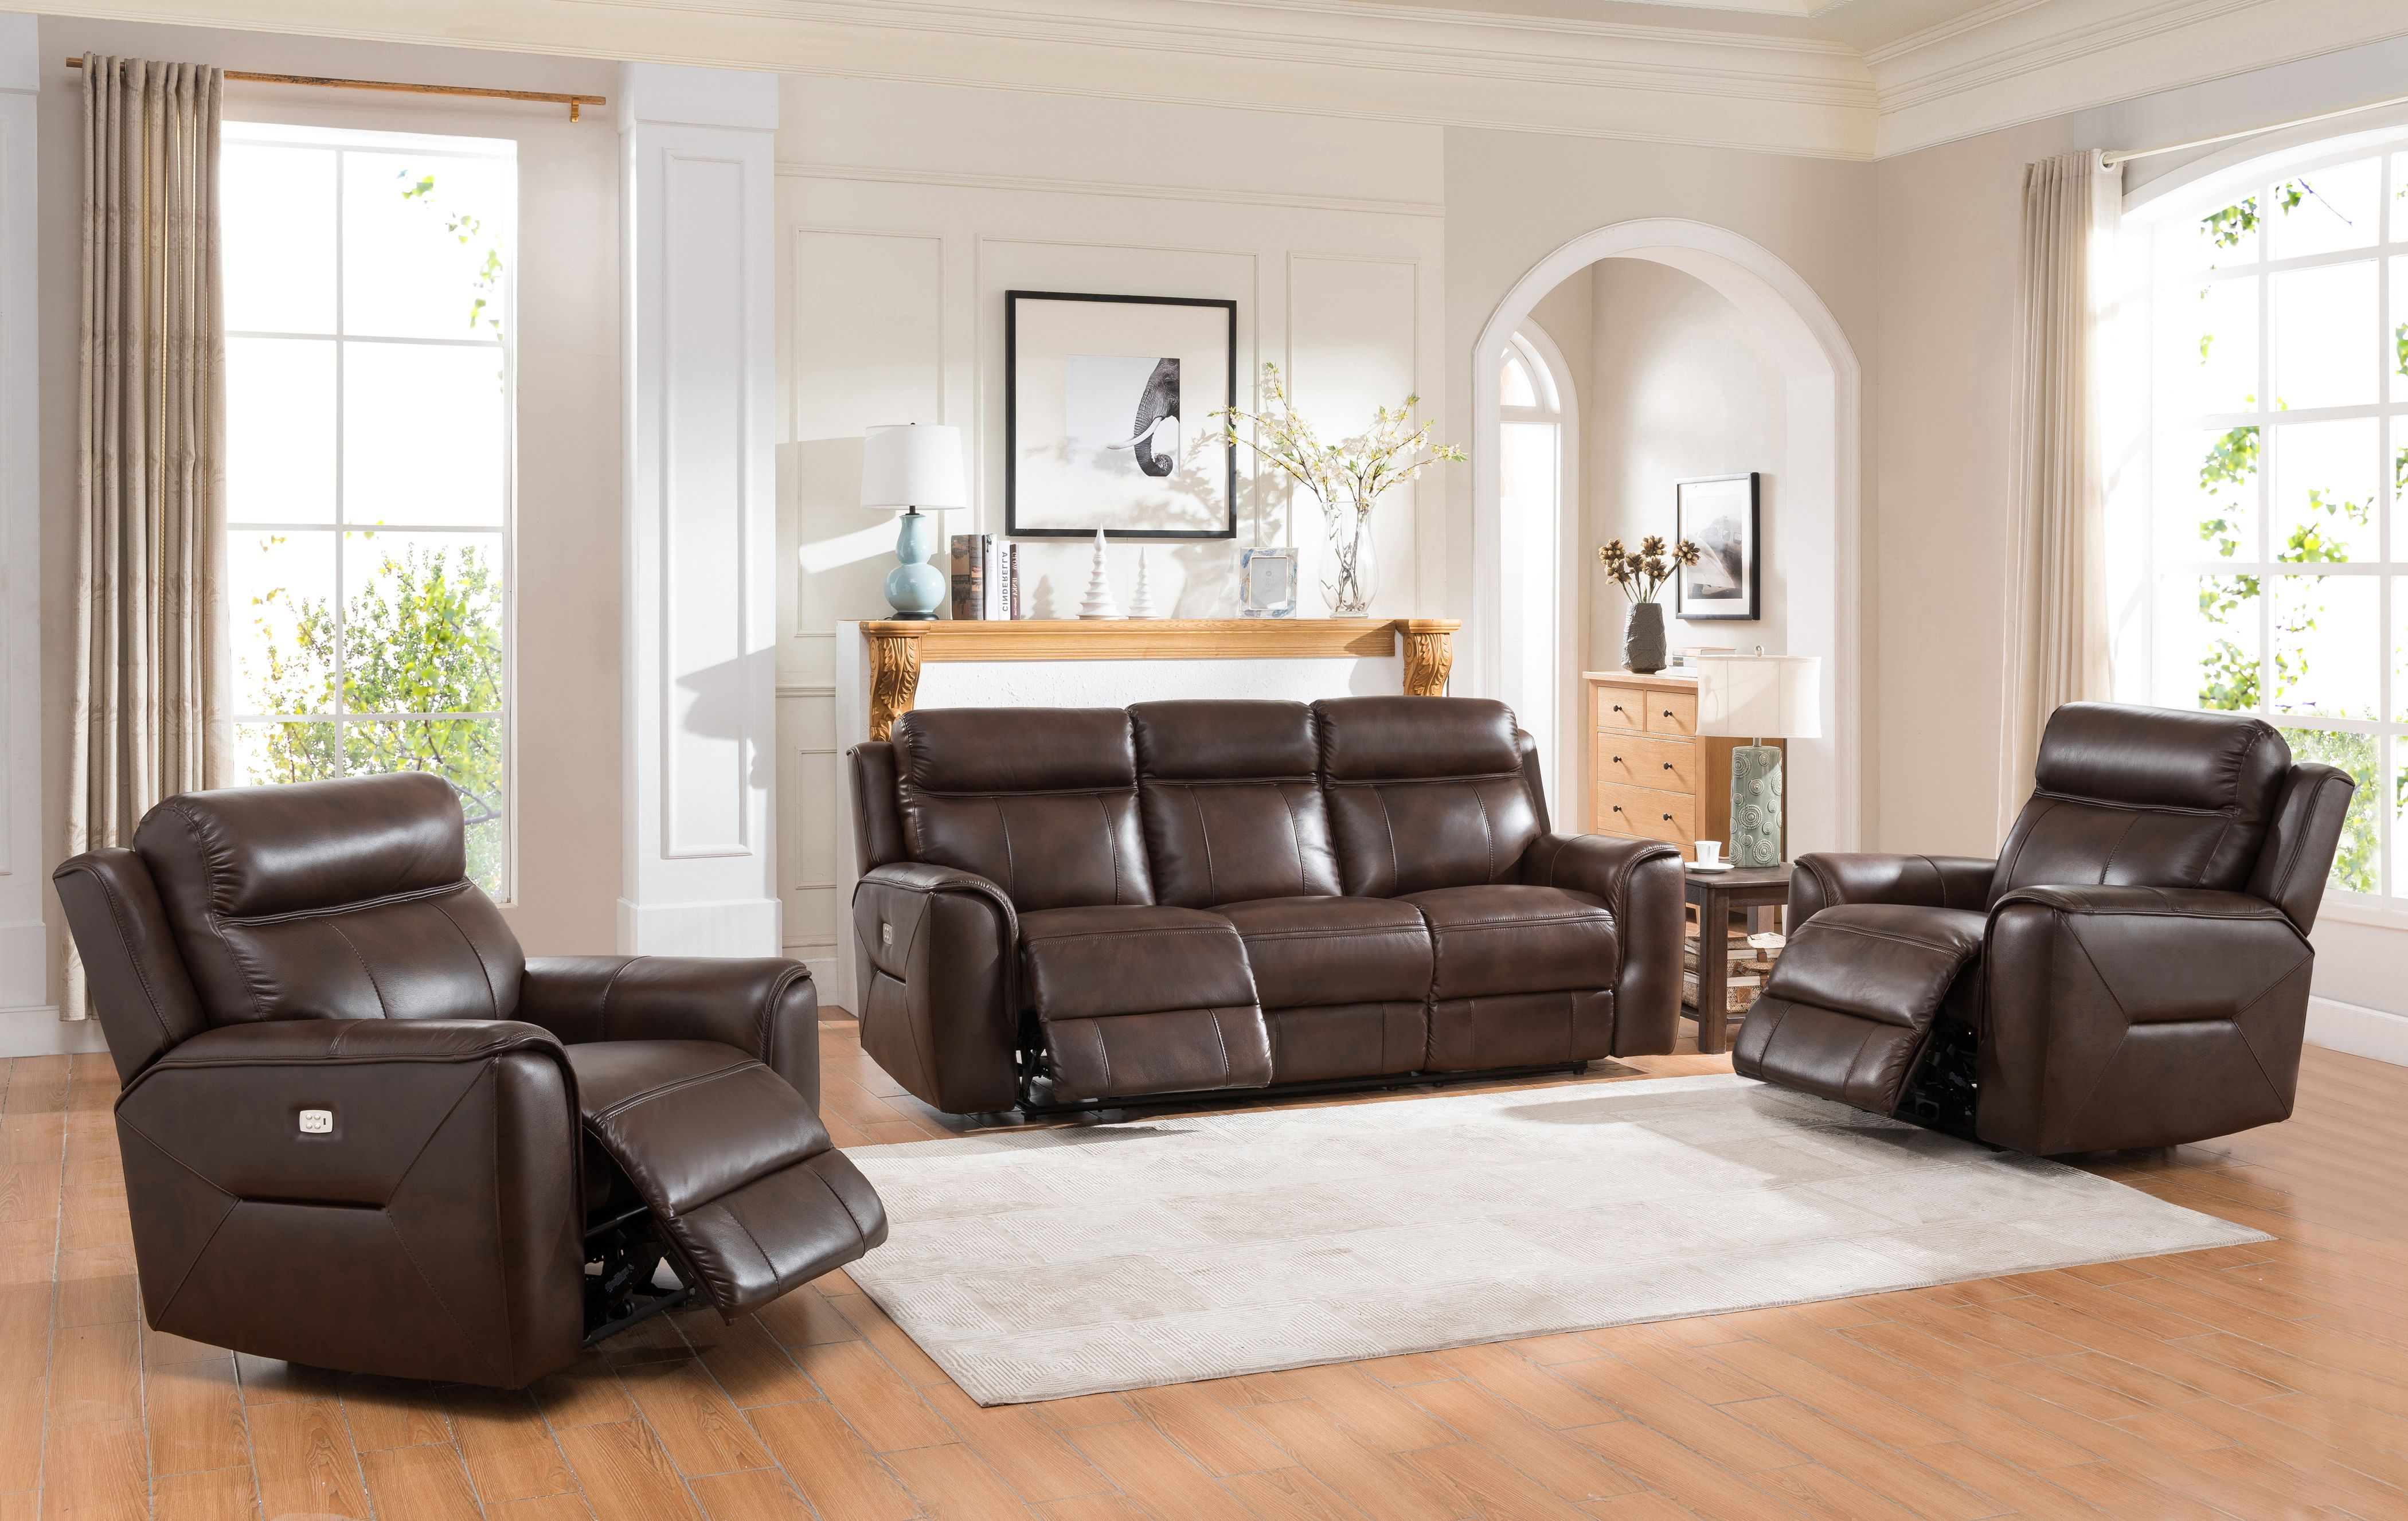 The Lacrosse Furniture 9555 Taos Canyon Leather Motion Group Dual Motor Power Recline Provides The Ability To Both Reclin Power Reclining Sofa Home Furniture #taft #furniture #living #room #set